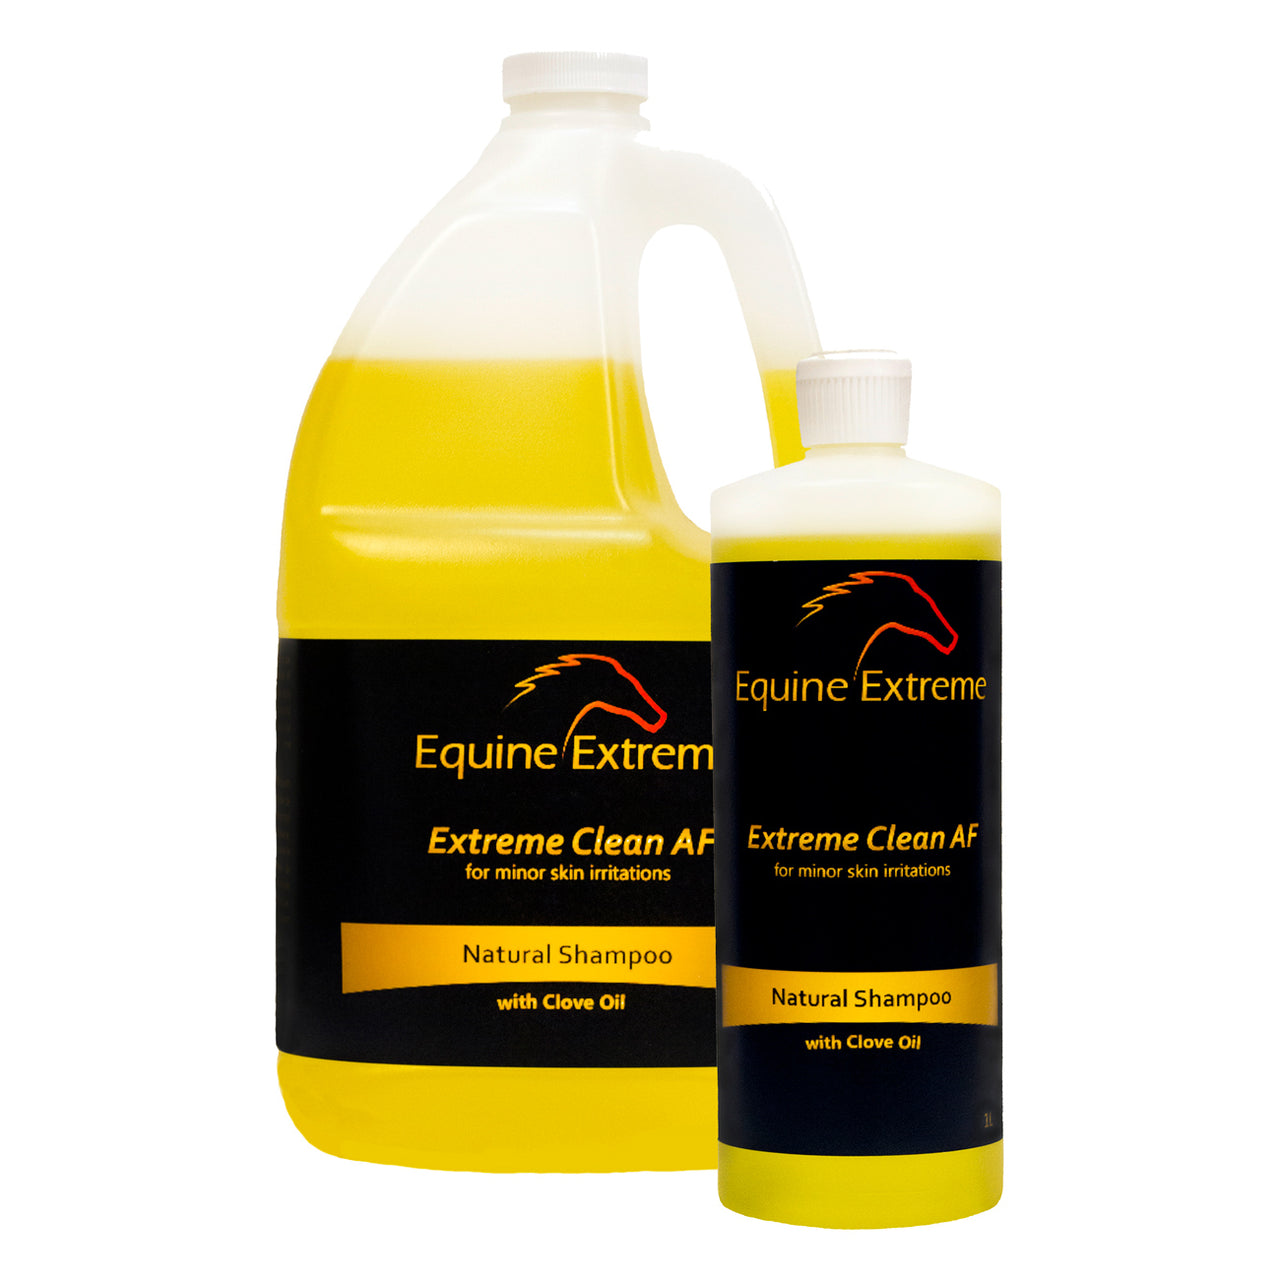 Equine Extreme Extreme Clean Anti-Fungal Shampoo 4L - Stable Cleaning Equine Extreme - Canada